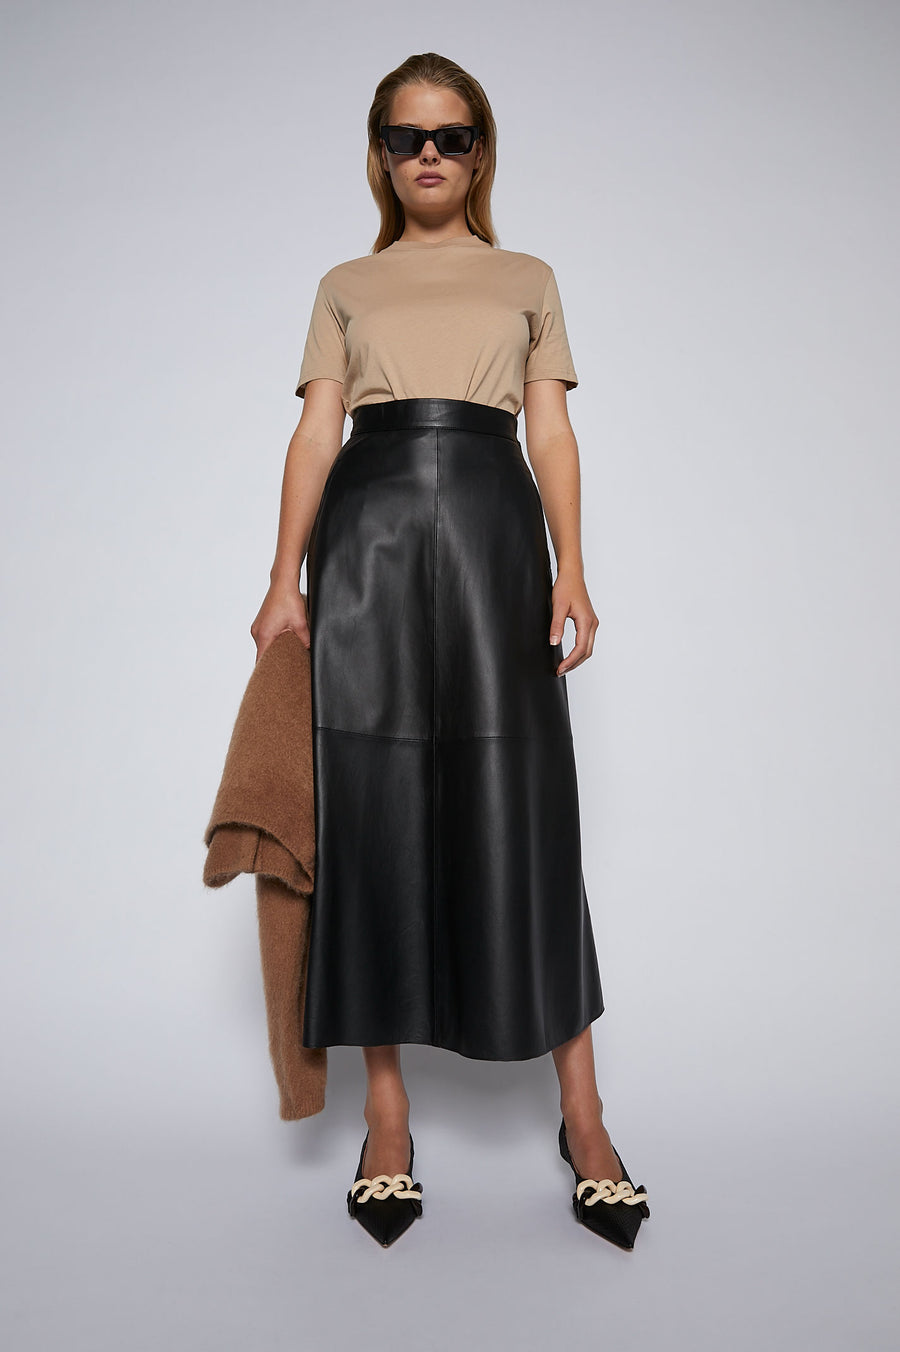 Reinvent your winter staples and invest in the leather long skirt.